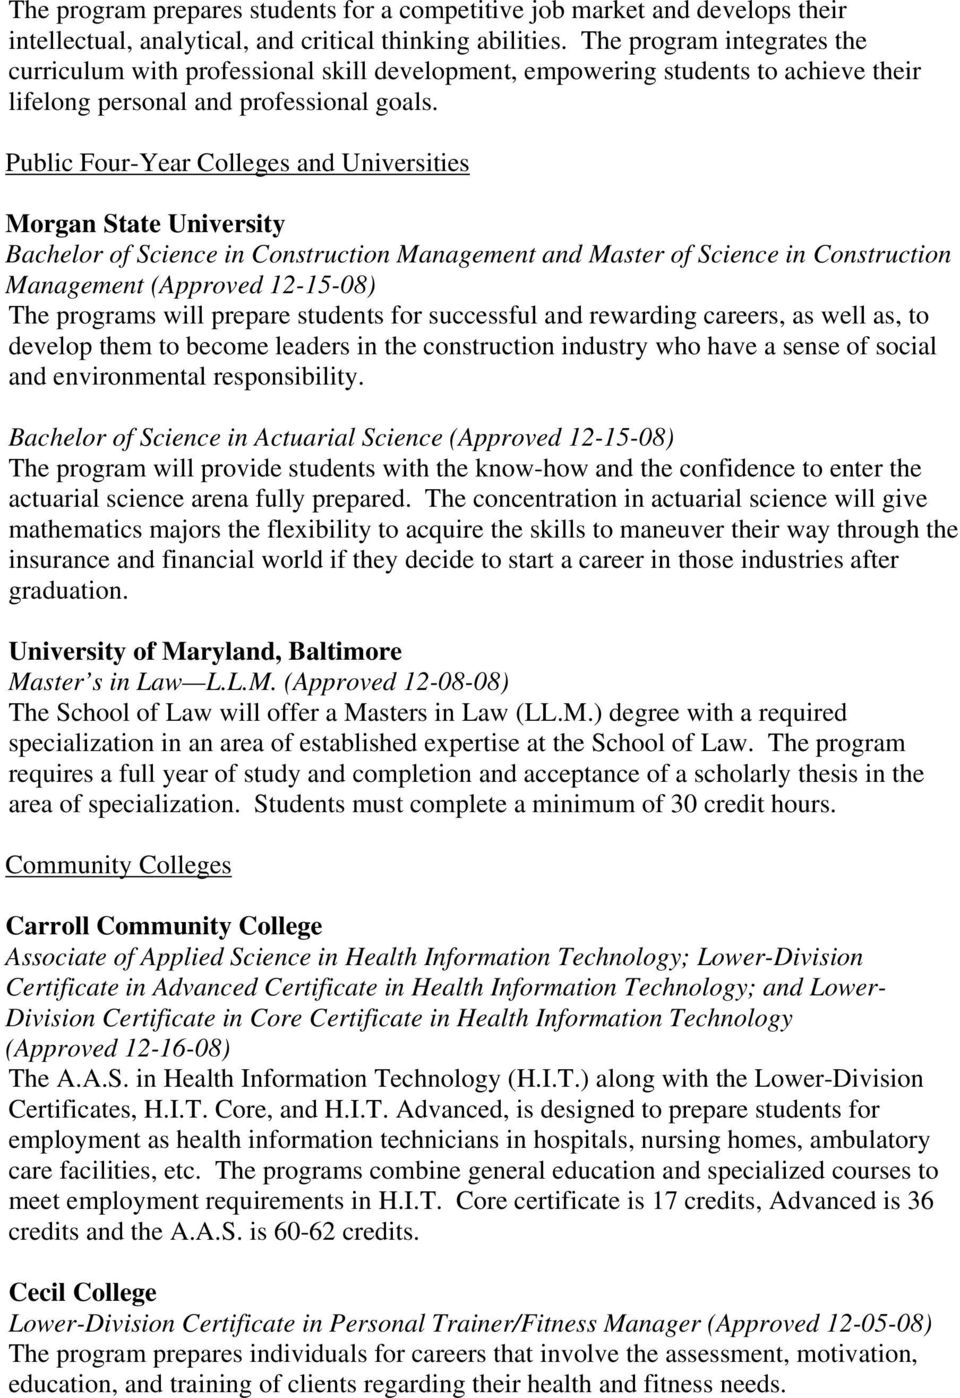 Public Four-Year Colleges and Universities Morgan State University Bachelor of Science in Construction Management and Master of Science in Construction Management (Approved 12-15-08) The programs